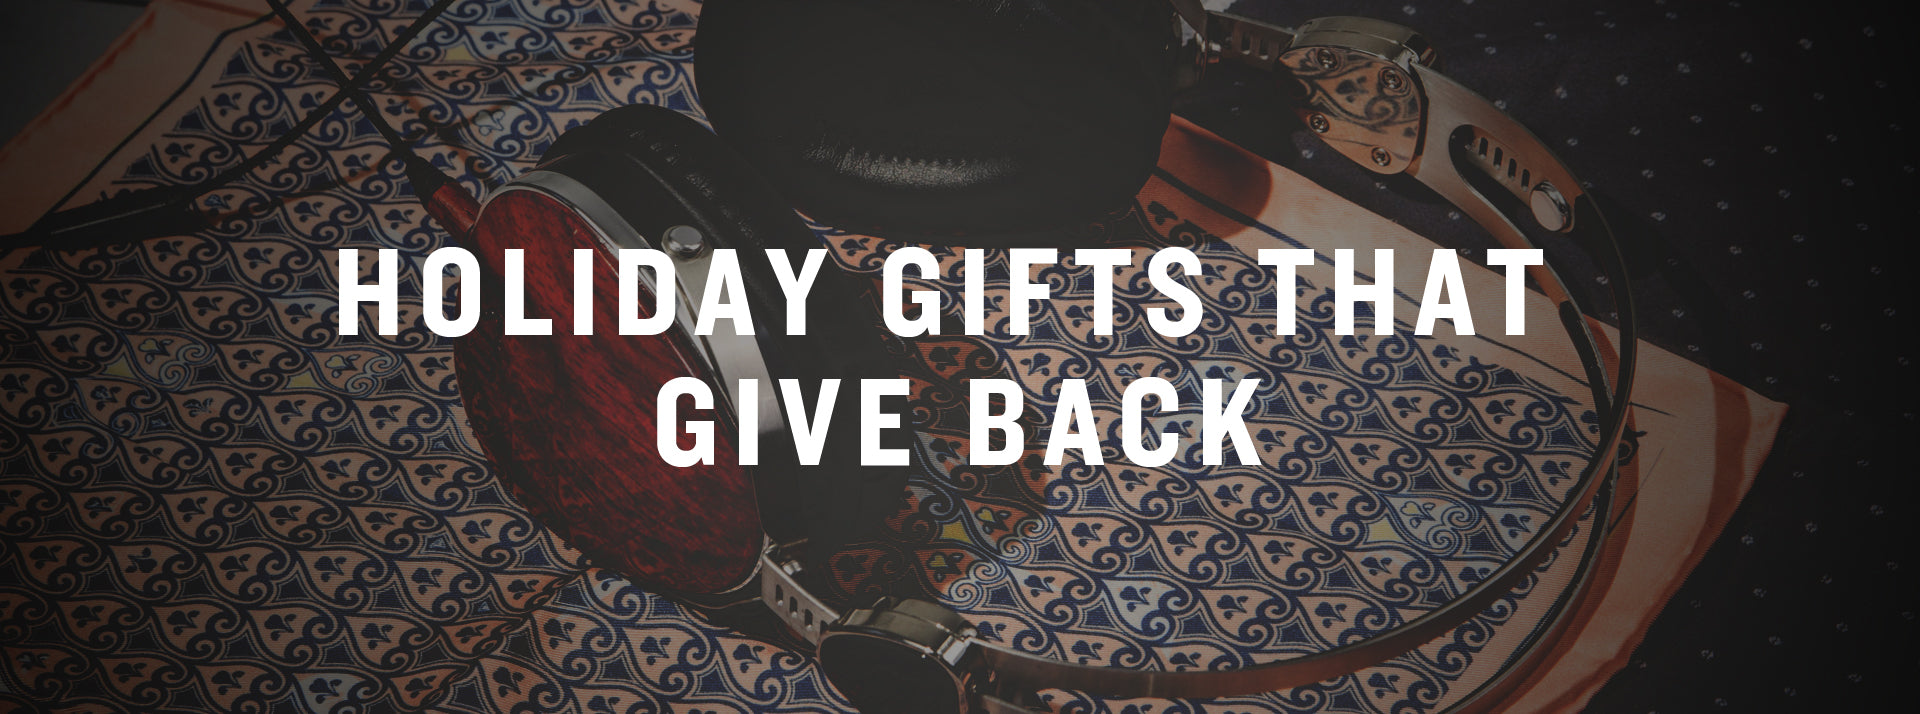 LSTN staff picks holiday gifts that give back